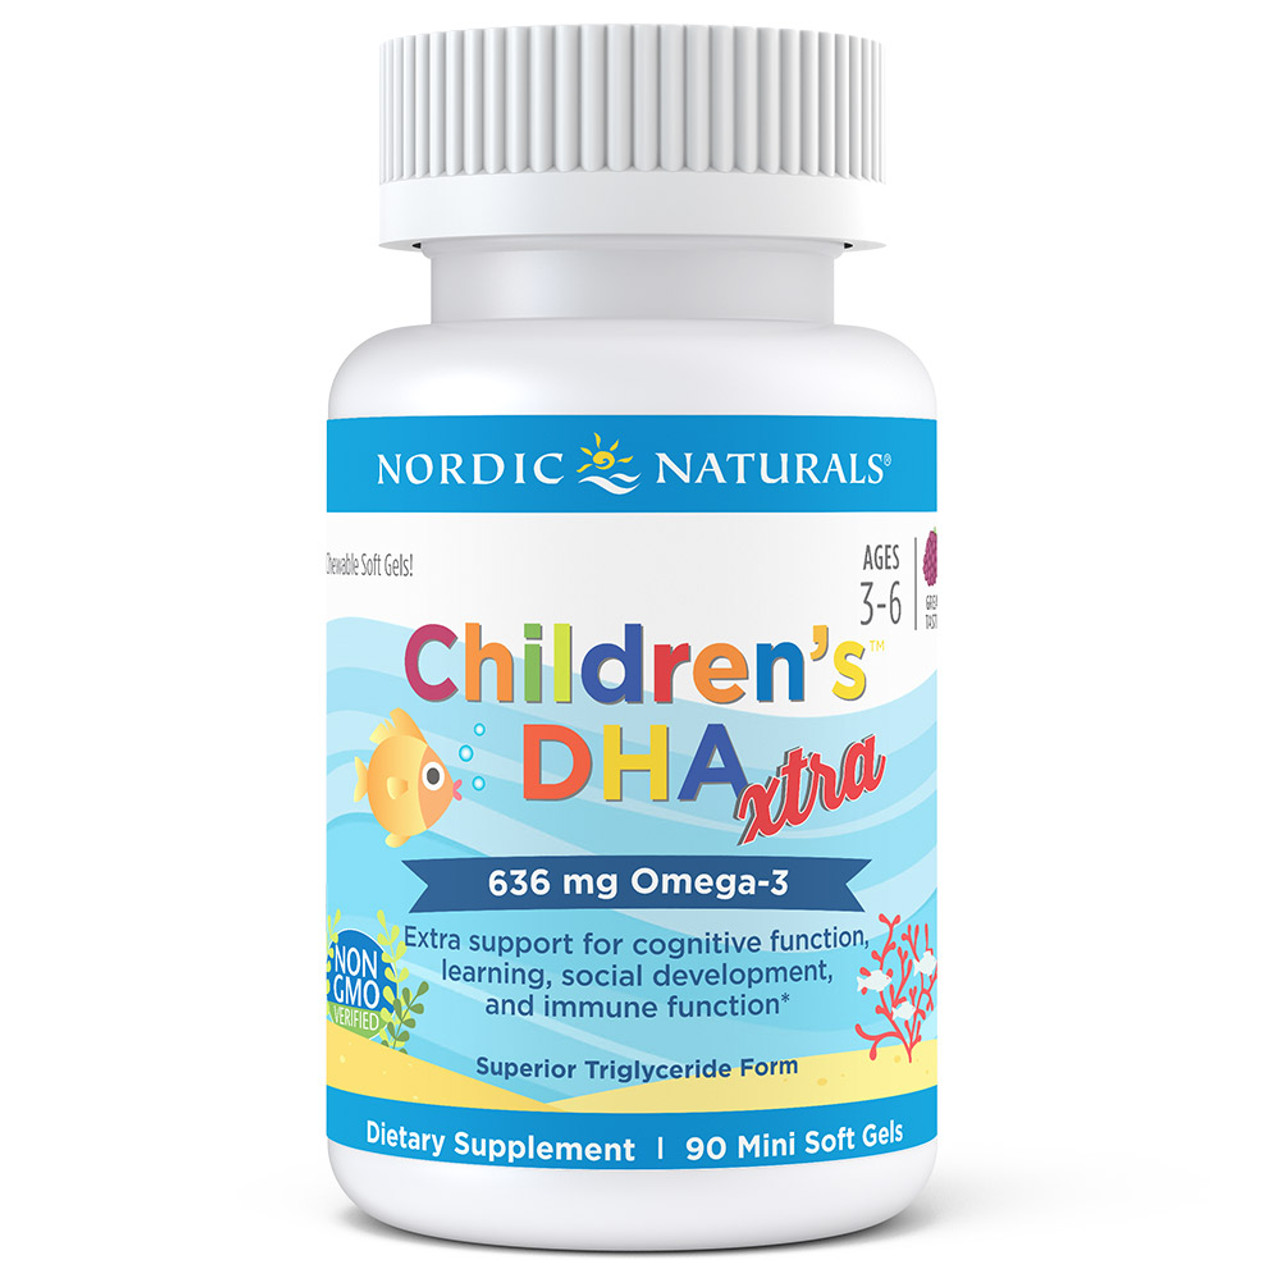 Children's DHA Xtra berry punch 90 ct.